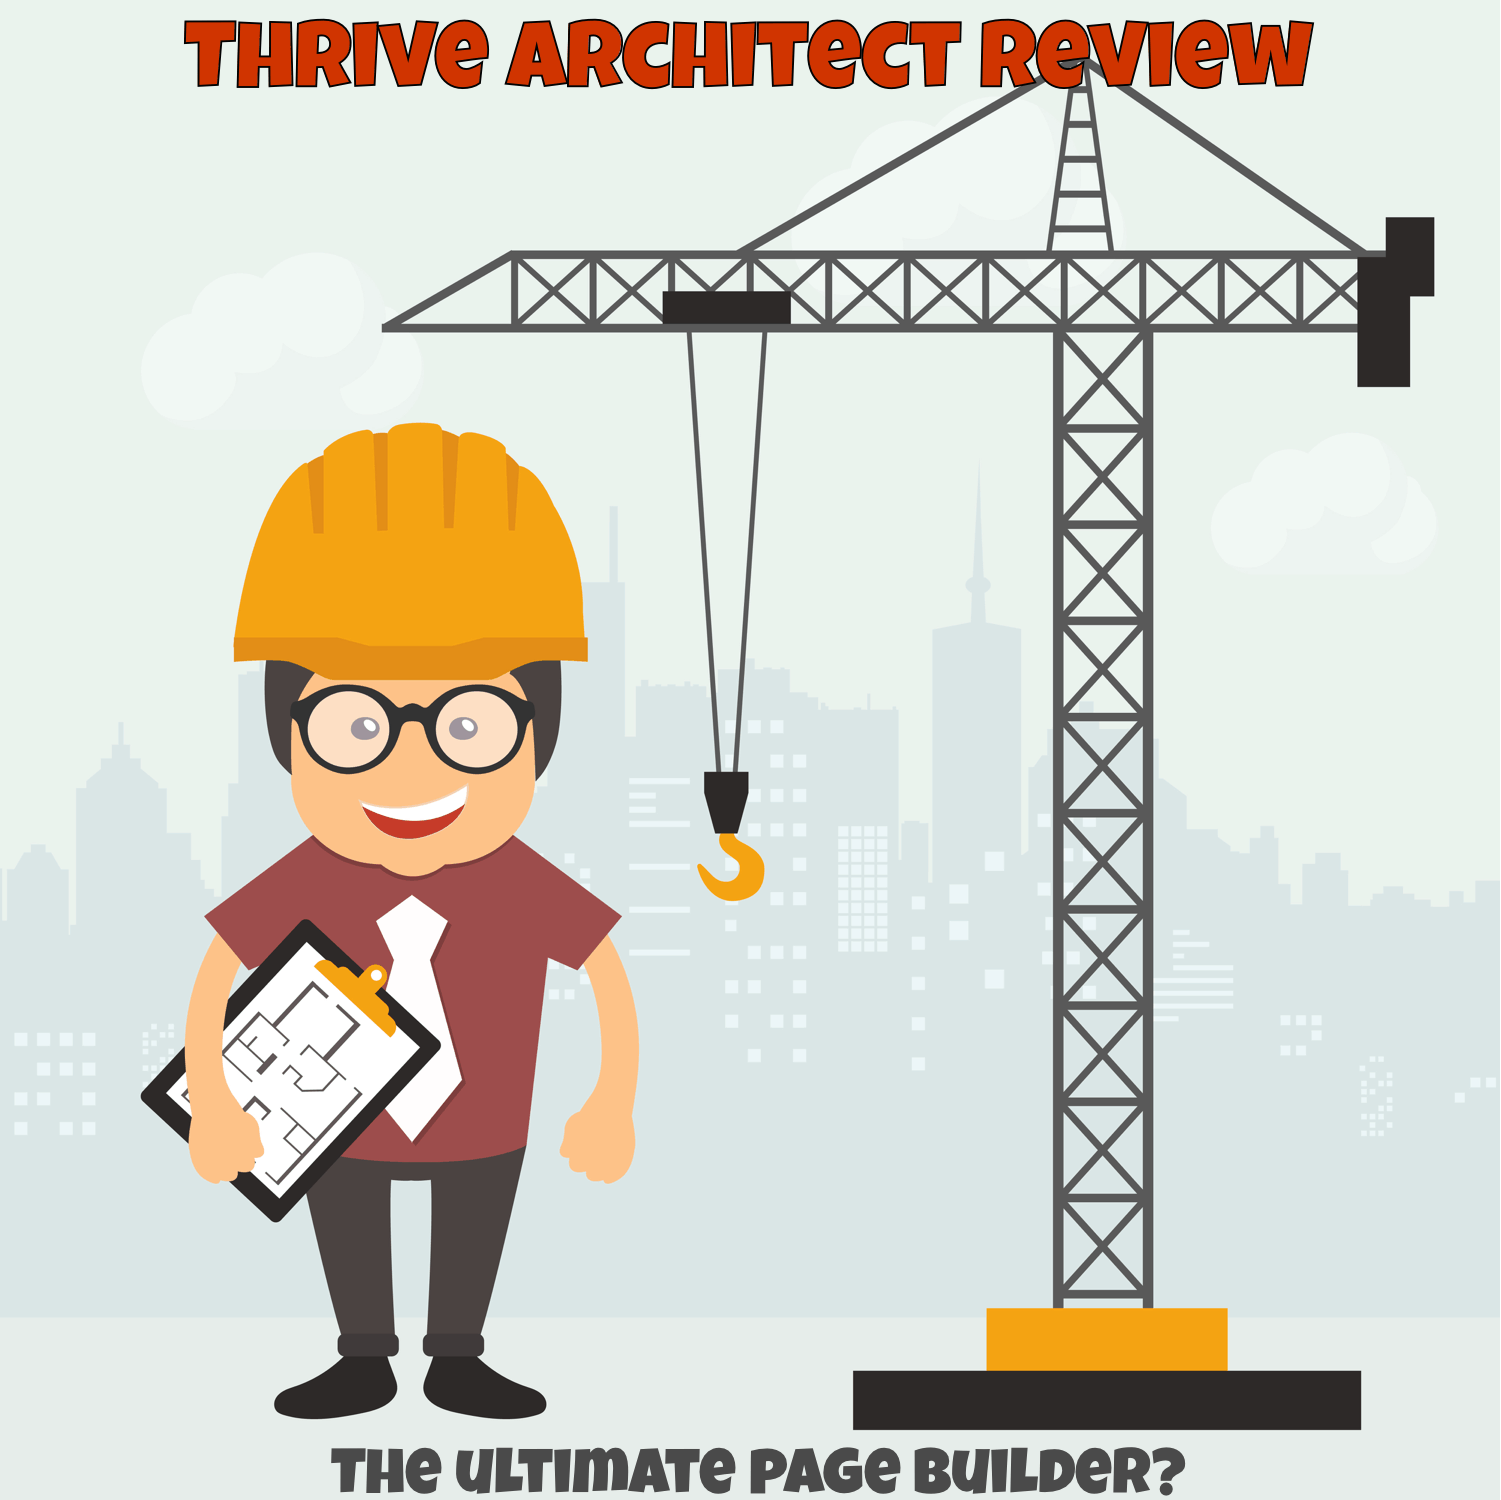 thrive architect review 1